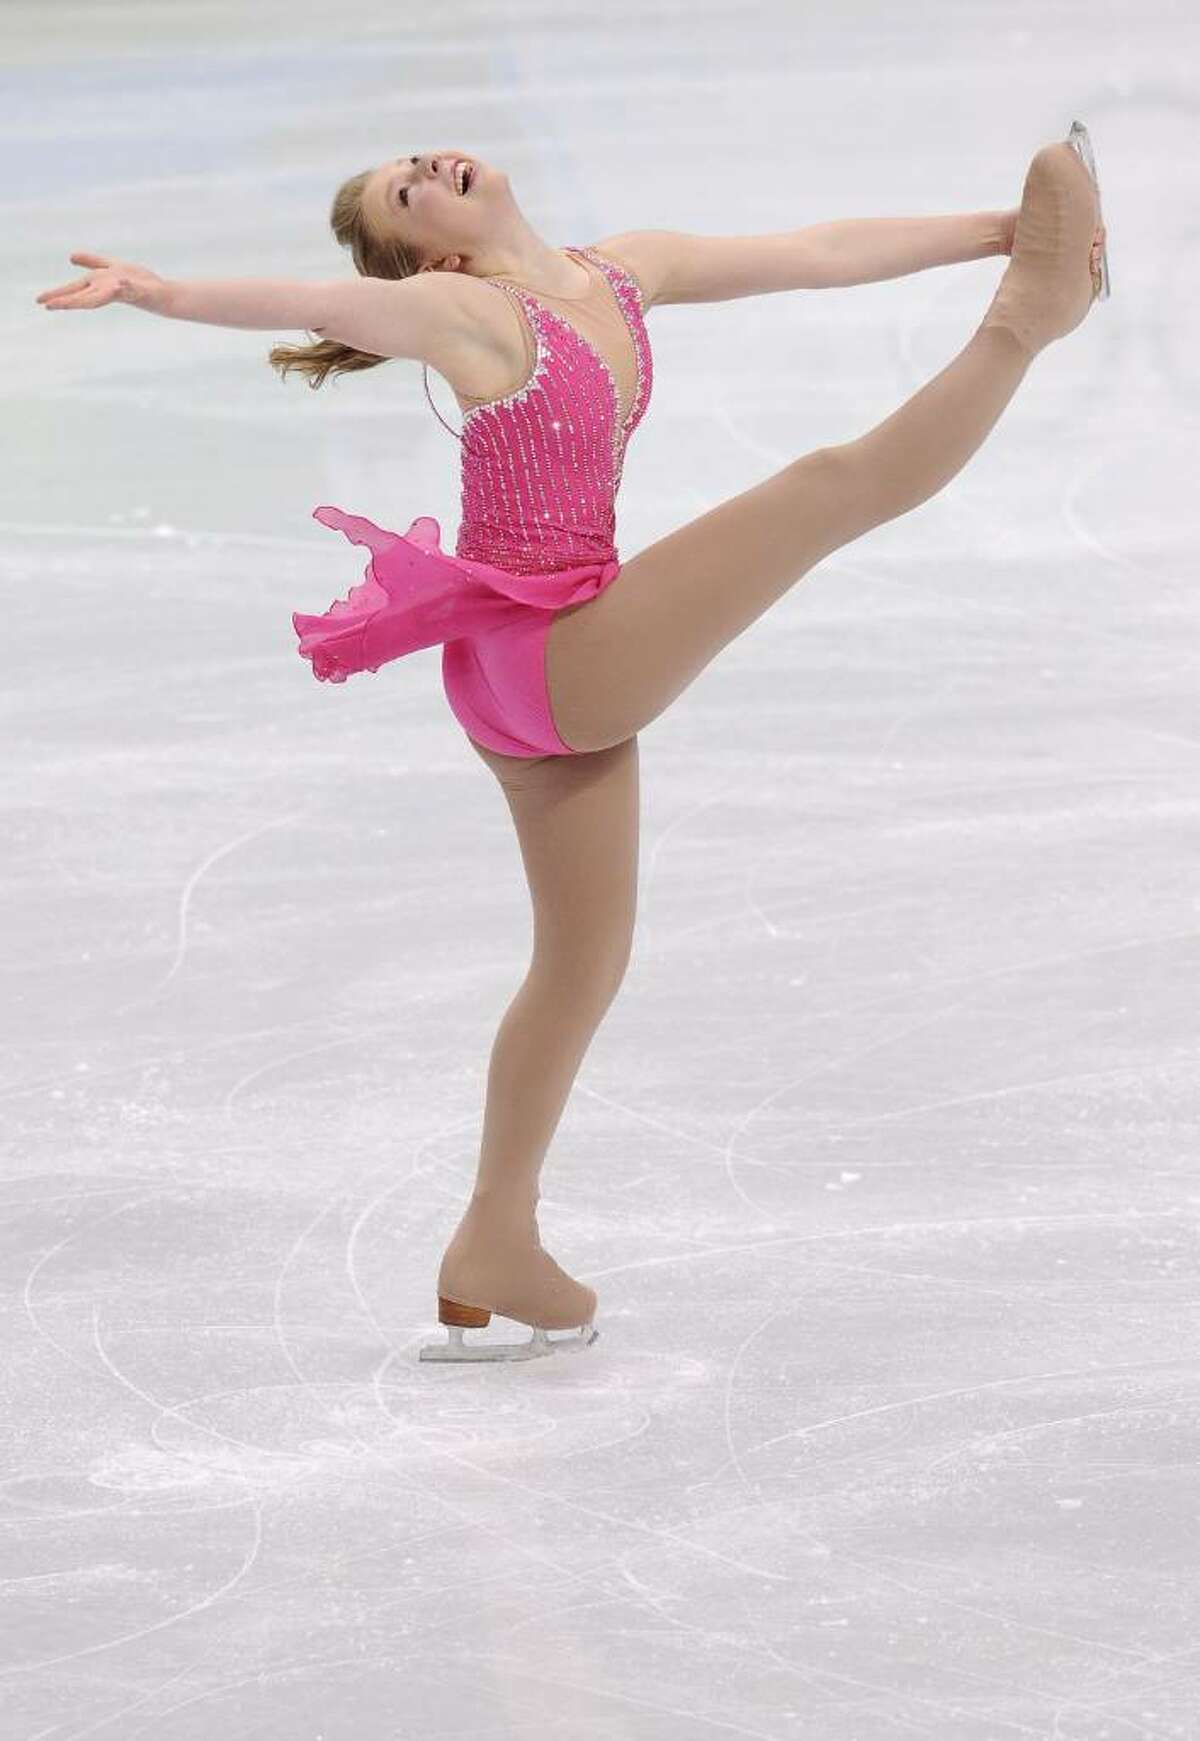 VANCOUVER, BC - FEBRUARY 23: Rachael Flatt of the United States competes in the Ladies Short Program Figure Skating on day 12 of the 2010 Vancouver Winter Olympics at Pacific Coliseum on February 23, 2010 in Vancouver, Canada. (Photo by Jasper Juinen/Getty Images) *** Local Caption *** Rachael Flatt